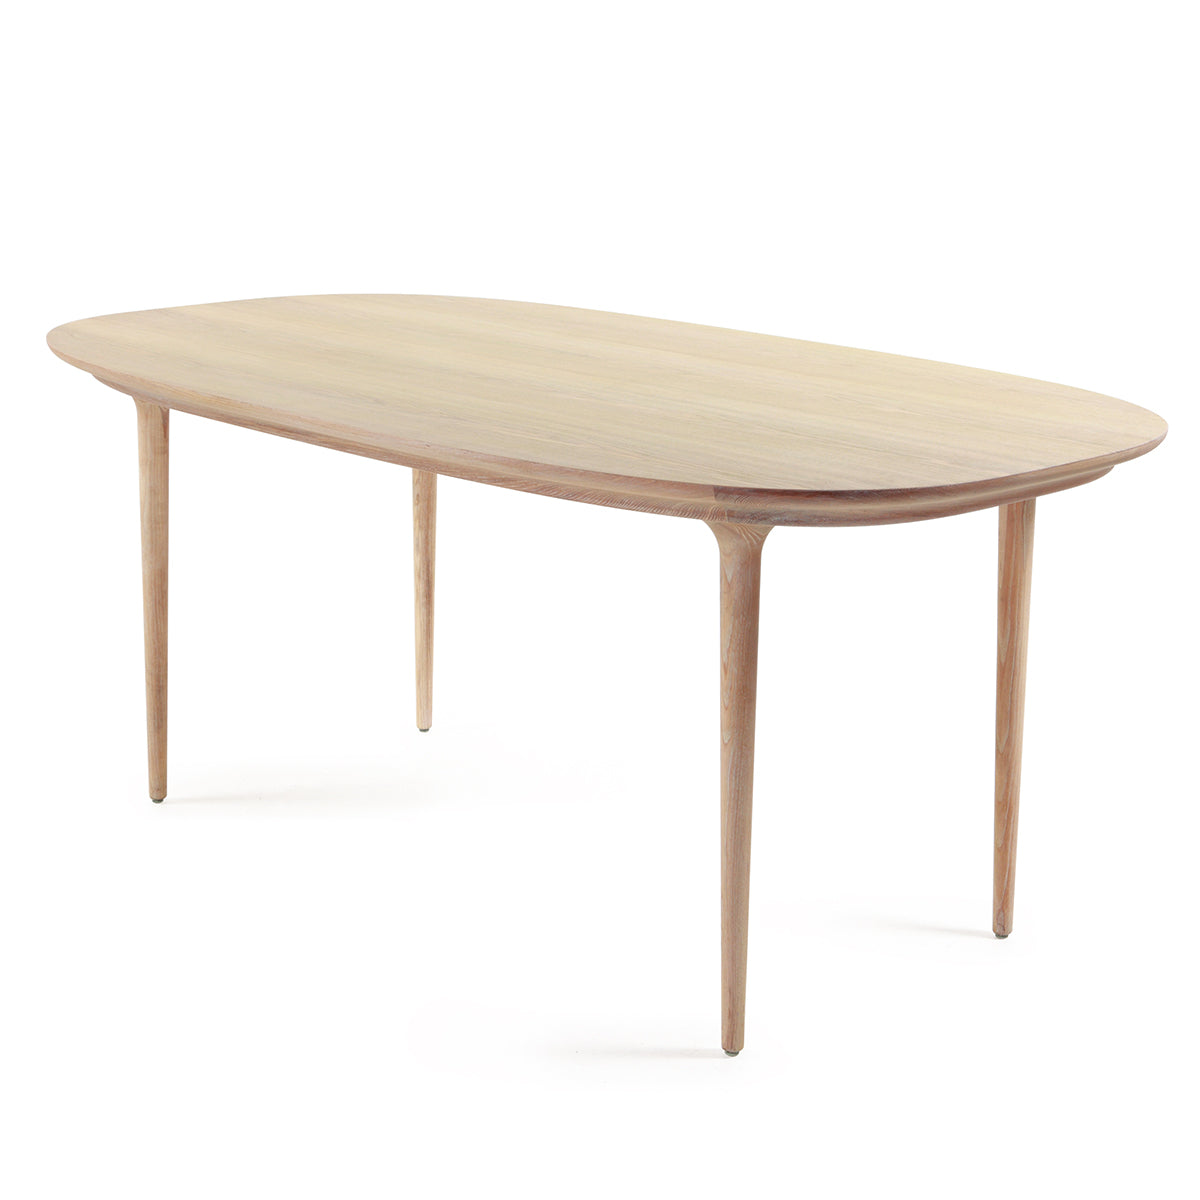 Lunar Dining Table - Stellar Works - Do Shop